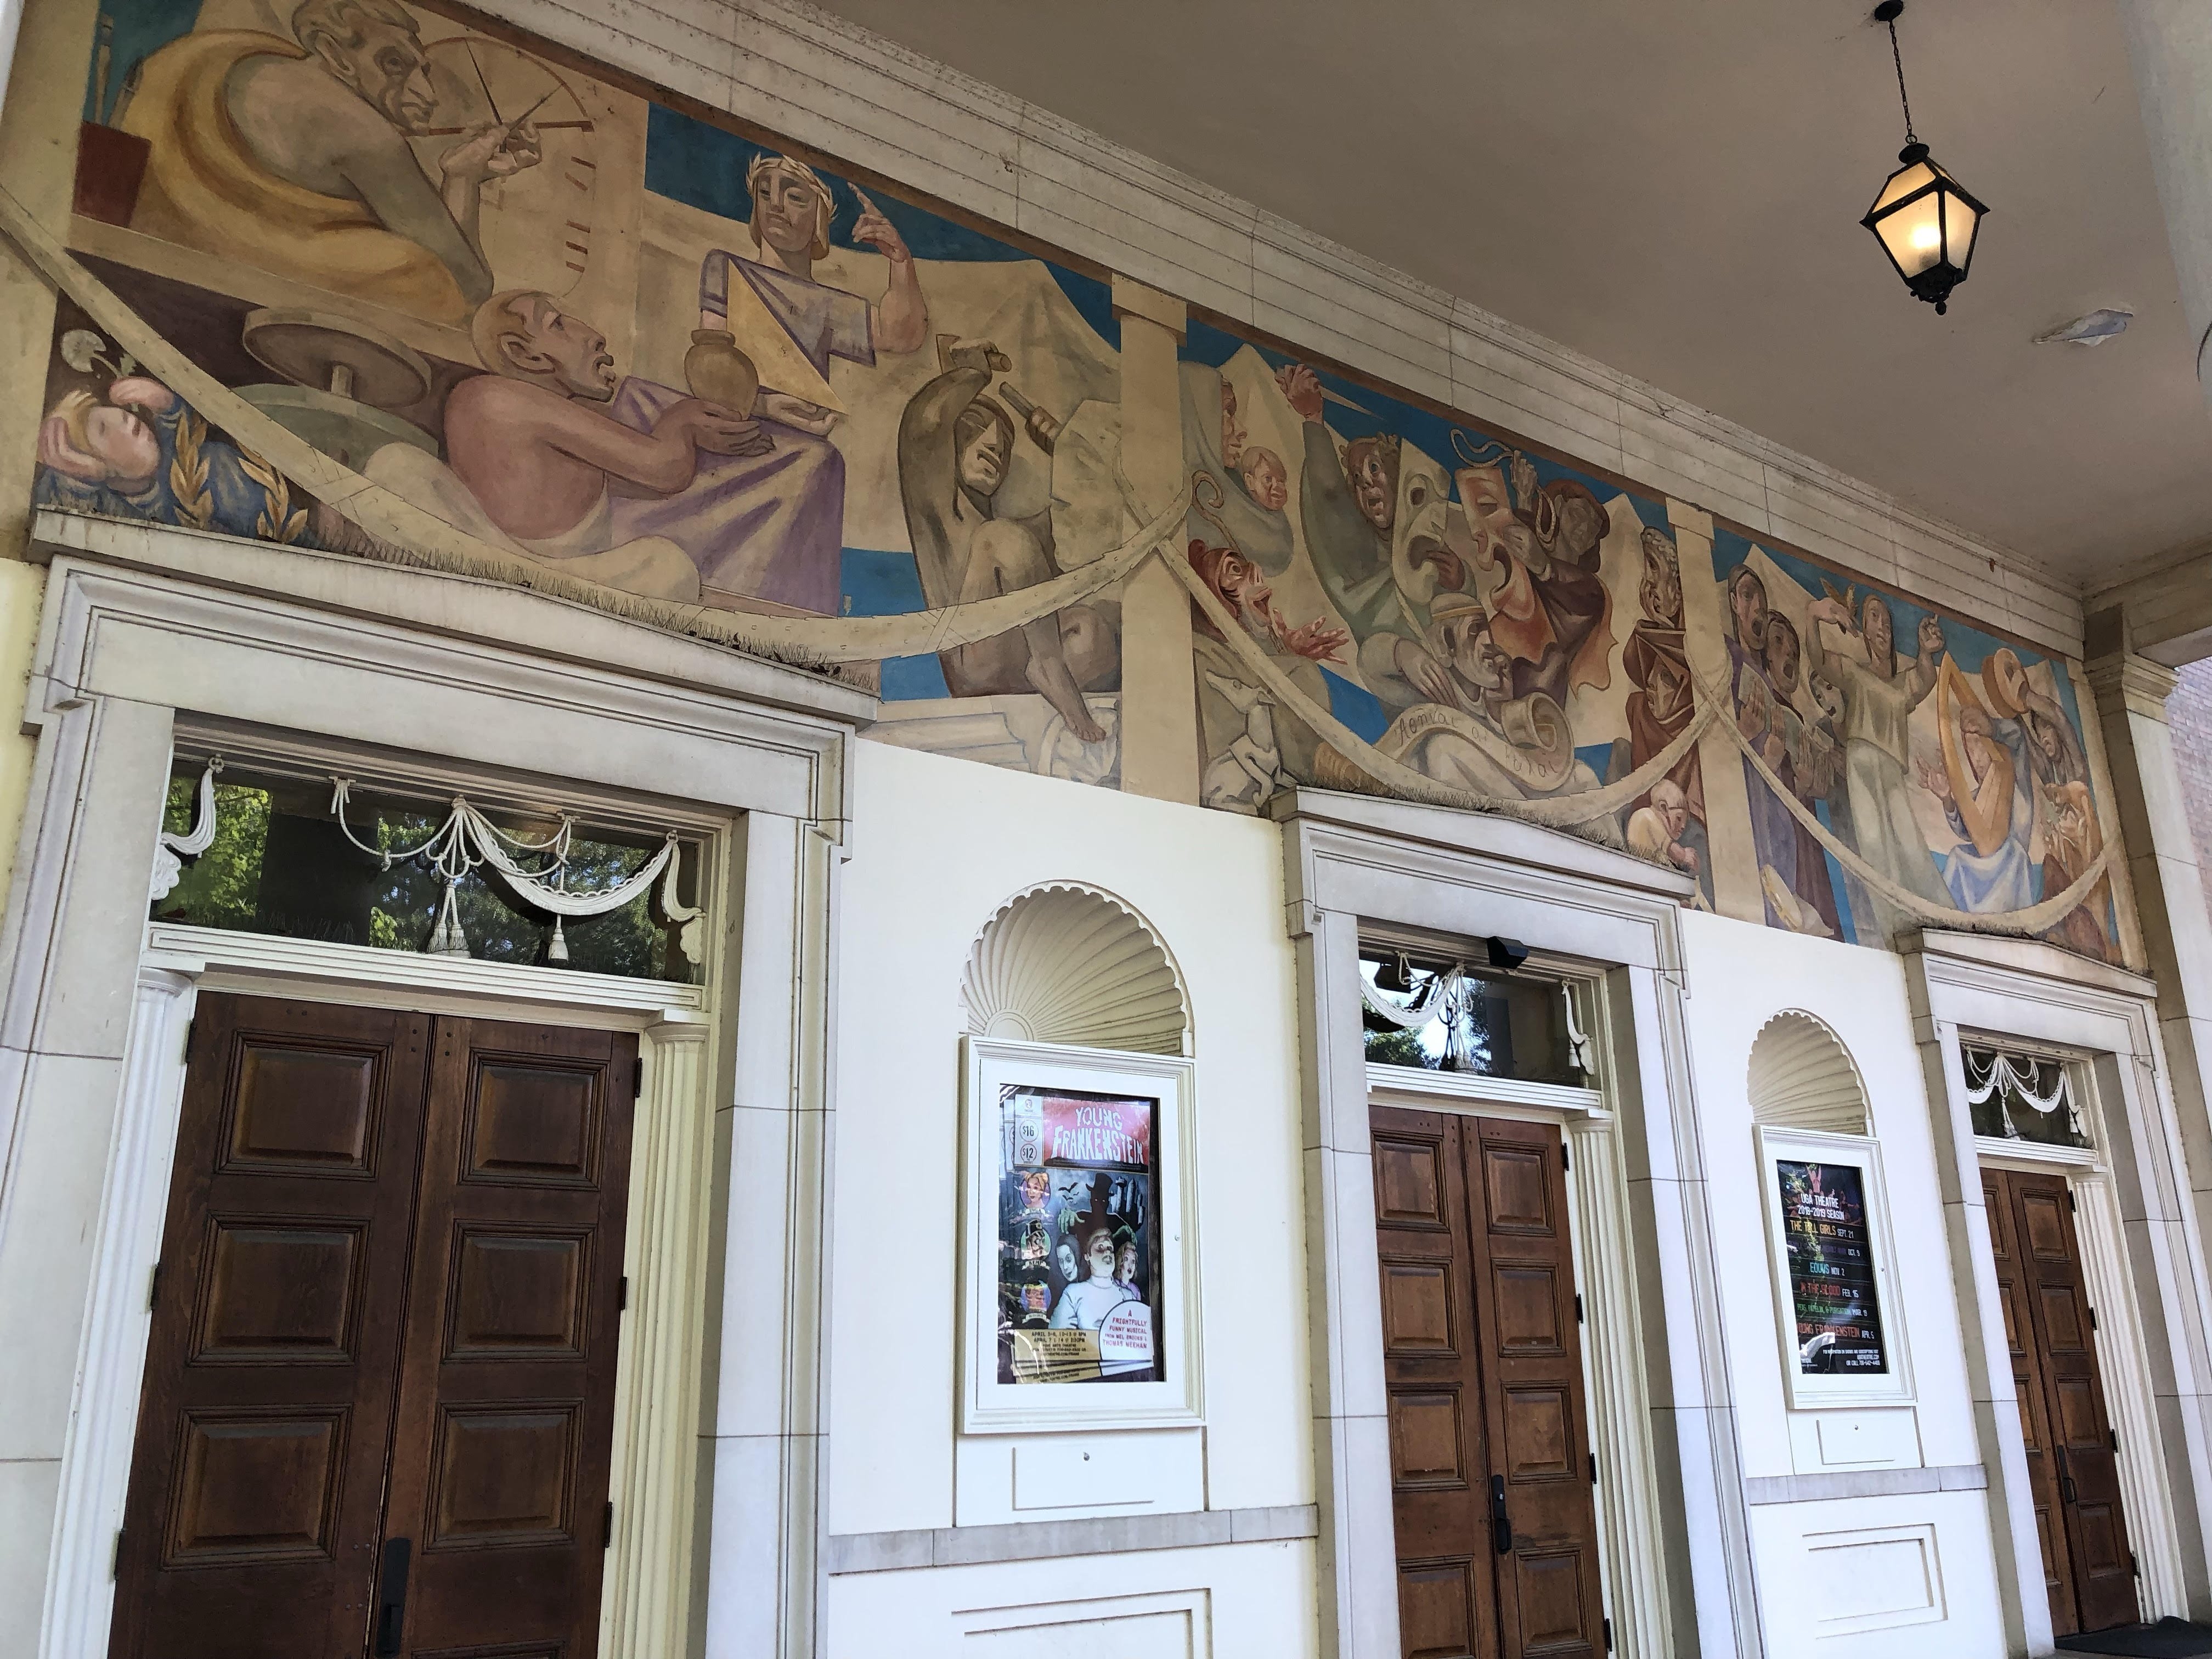 Grand mural adorning the building's main entrance (looking eastward).